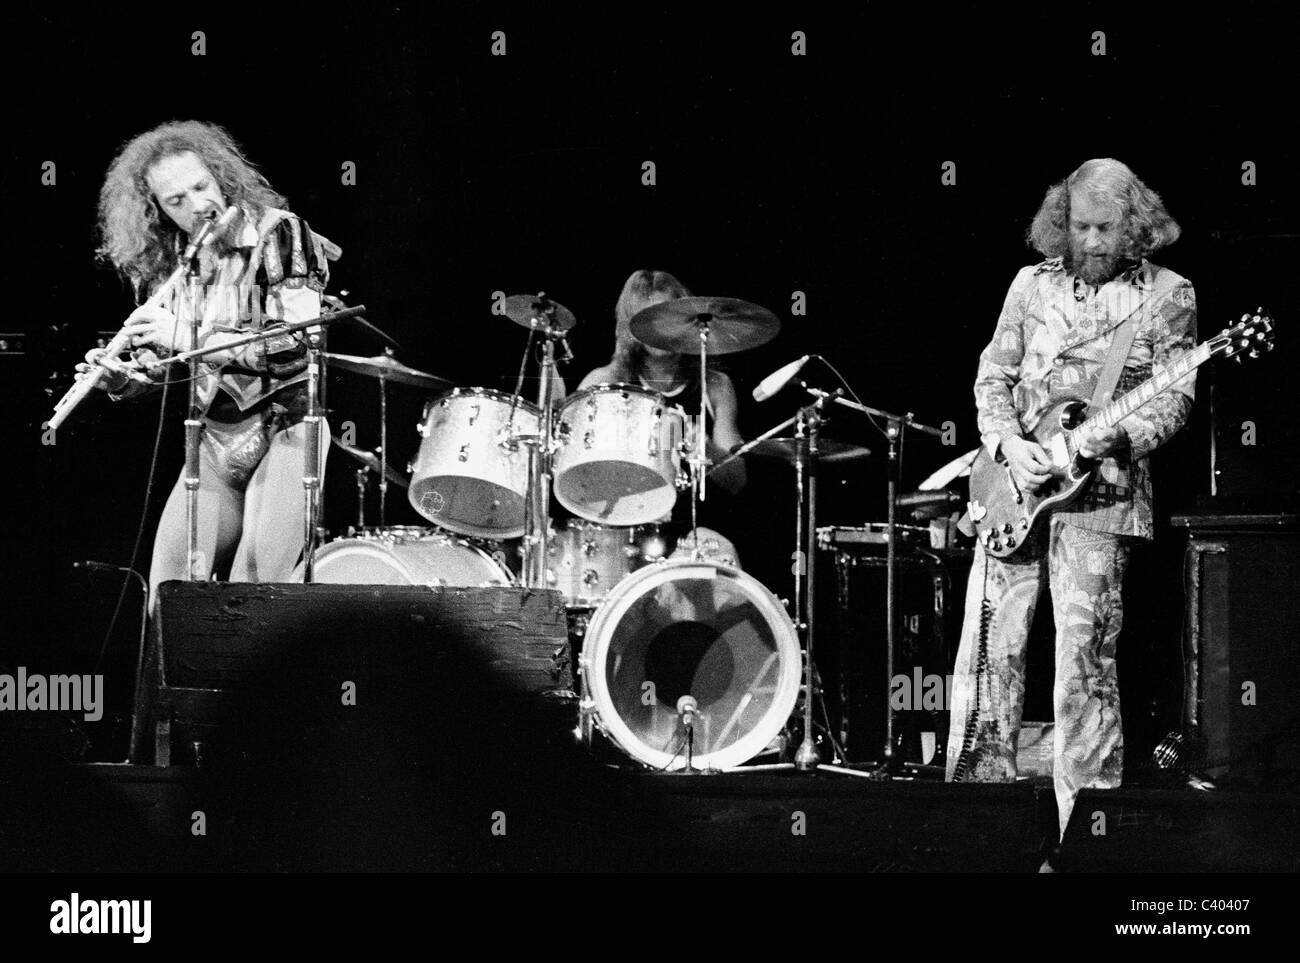 Ian Anderson and Martin Barre of the band Jethro Tull in performance at a concert in 1975. - Stock Image